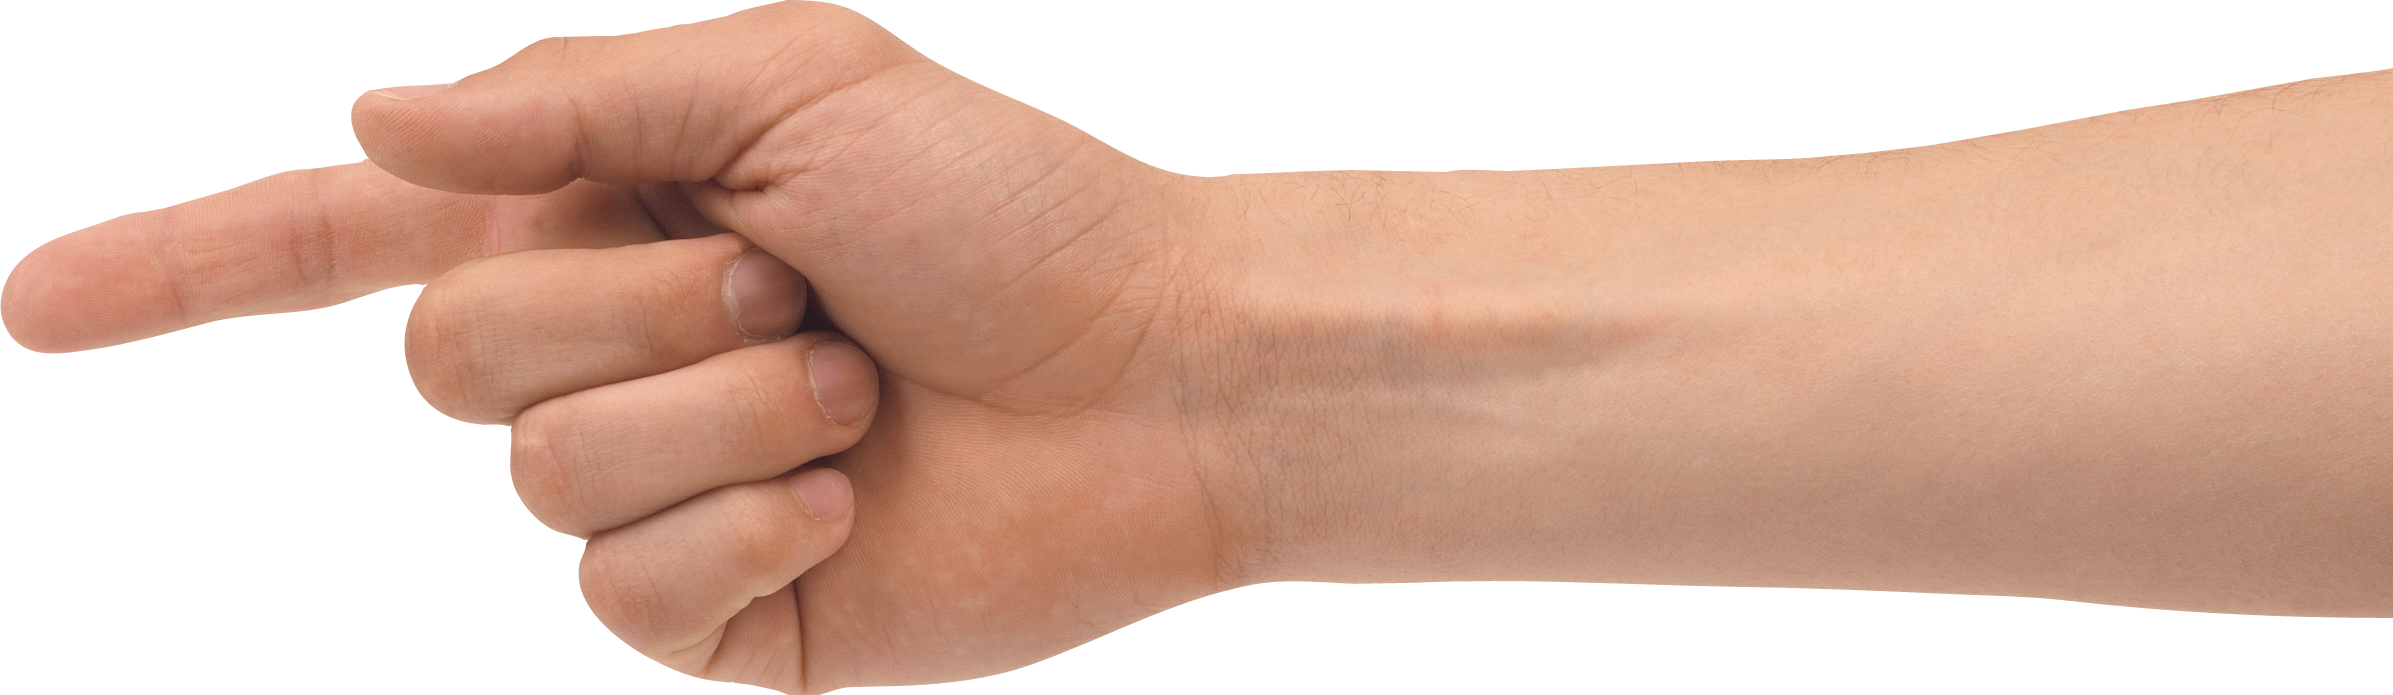 Hands Finger Transparent Png image #44759